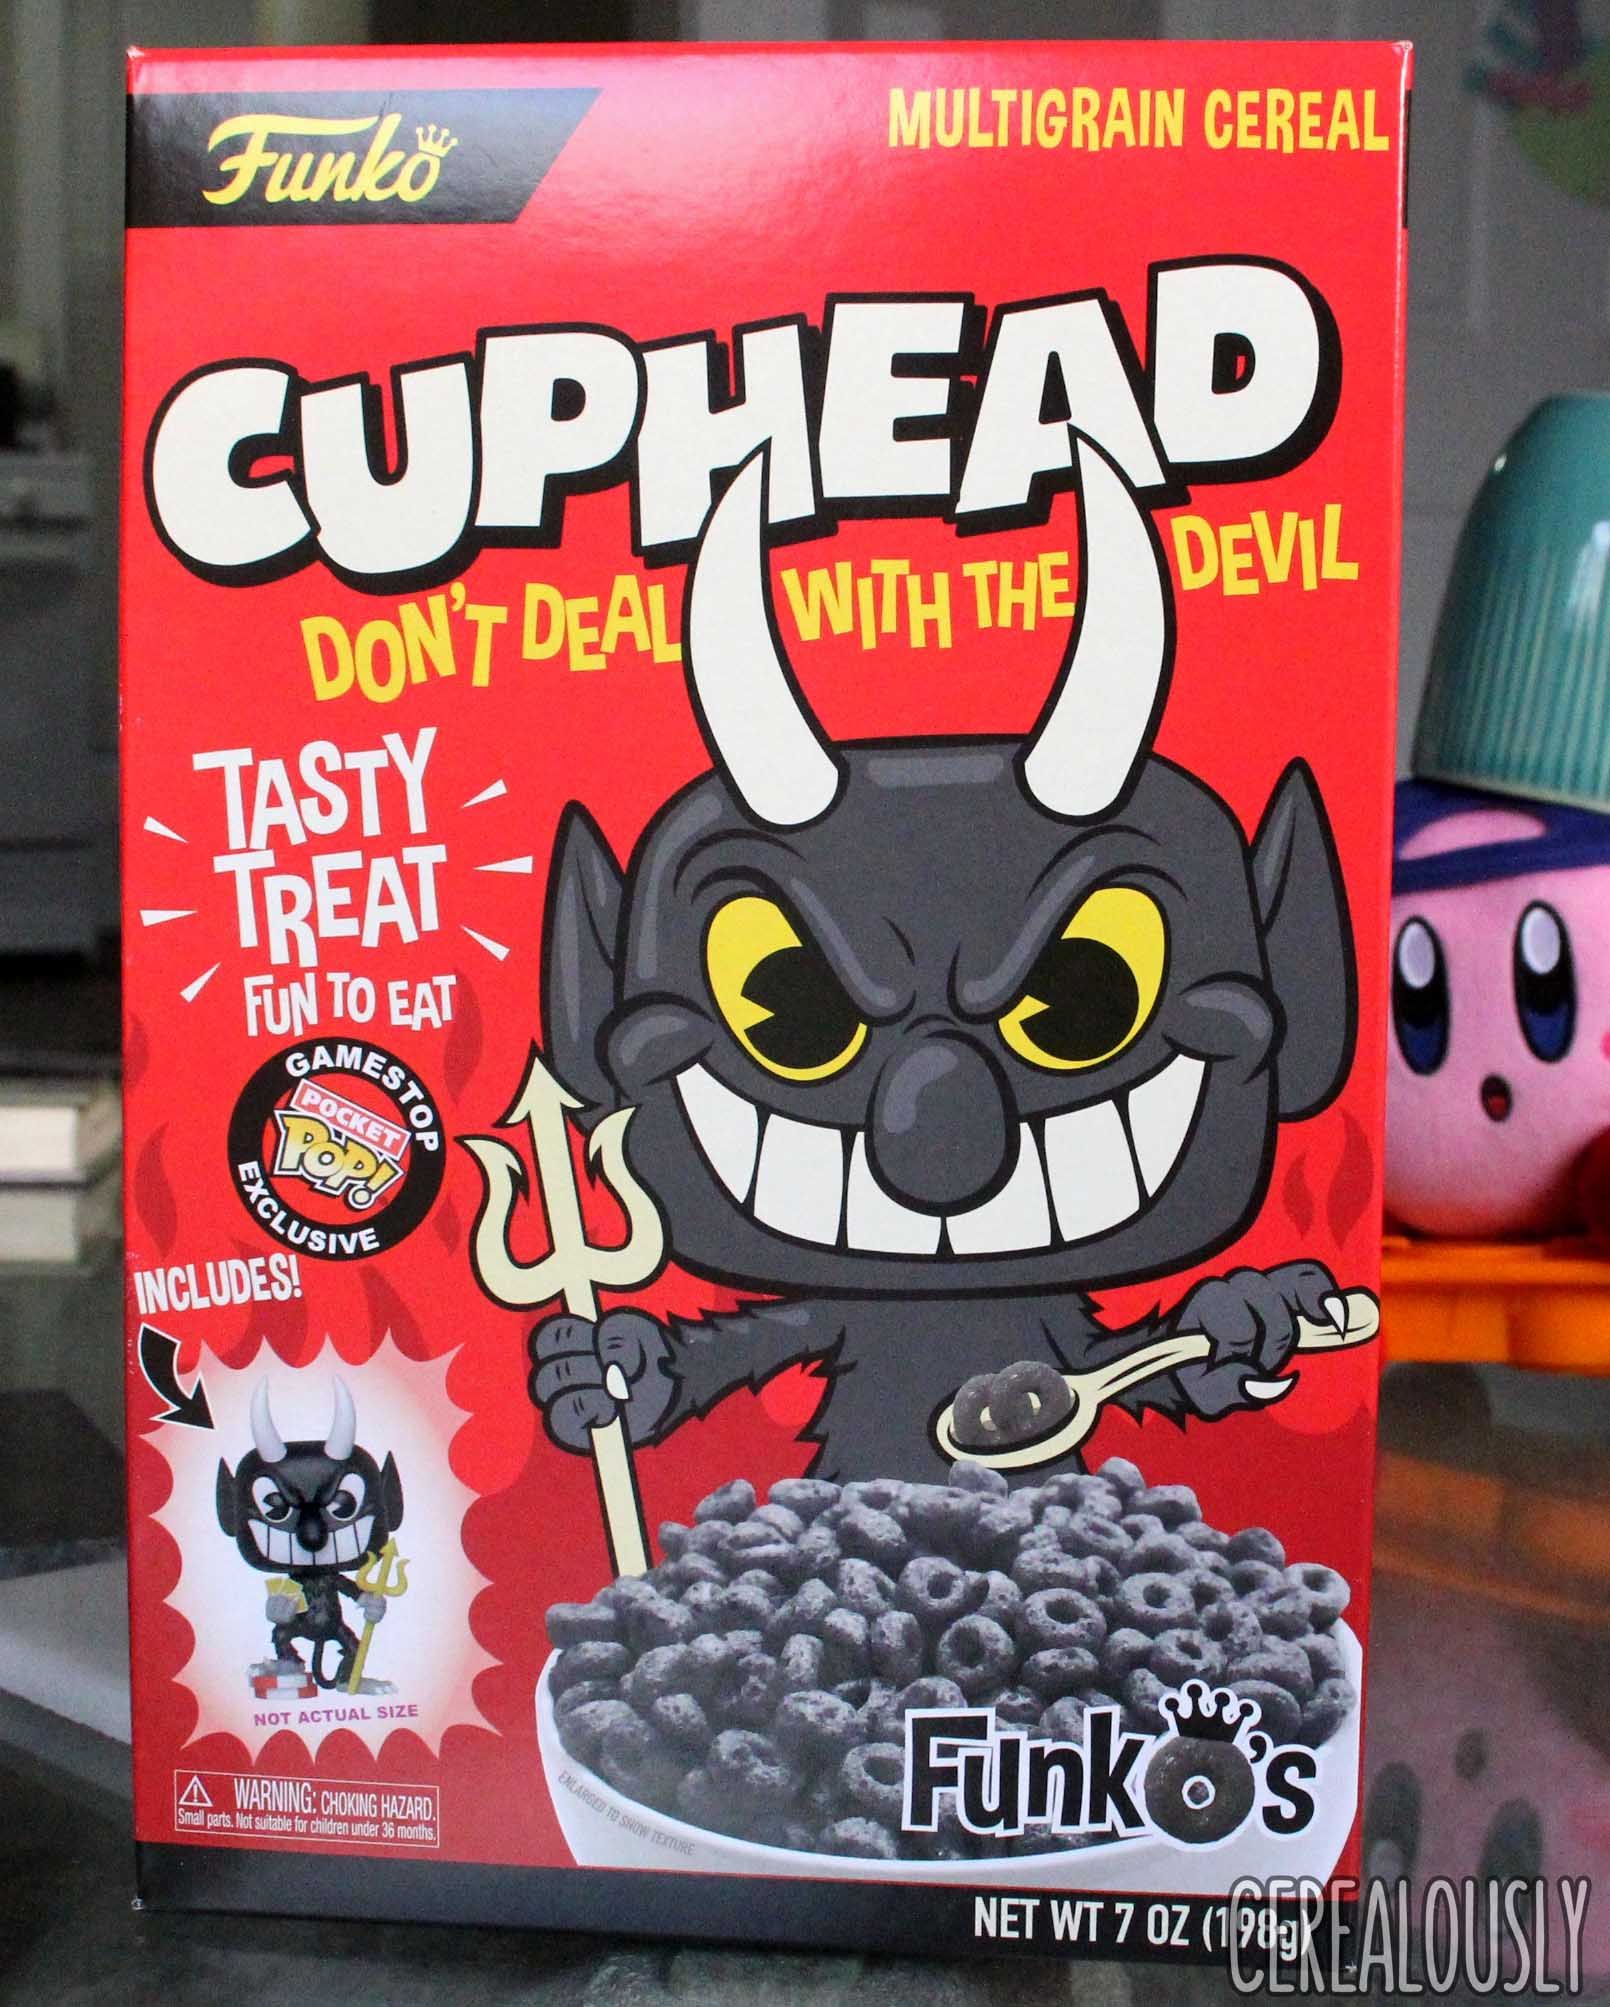 Cuphead Don't Deal With The Devil